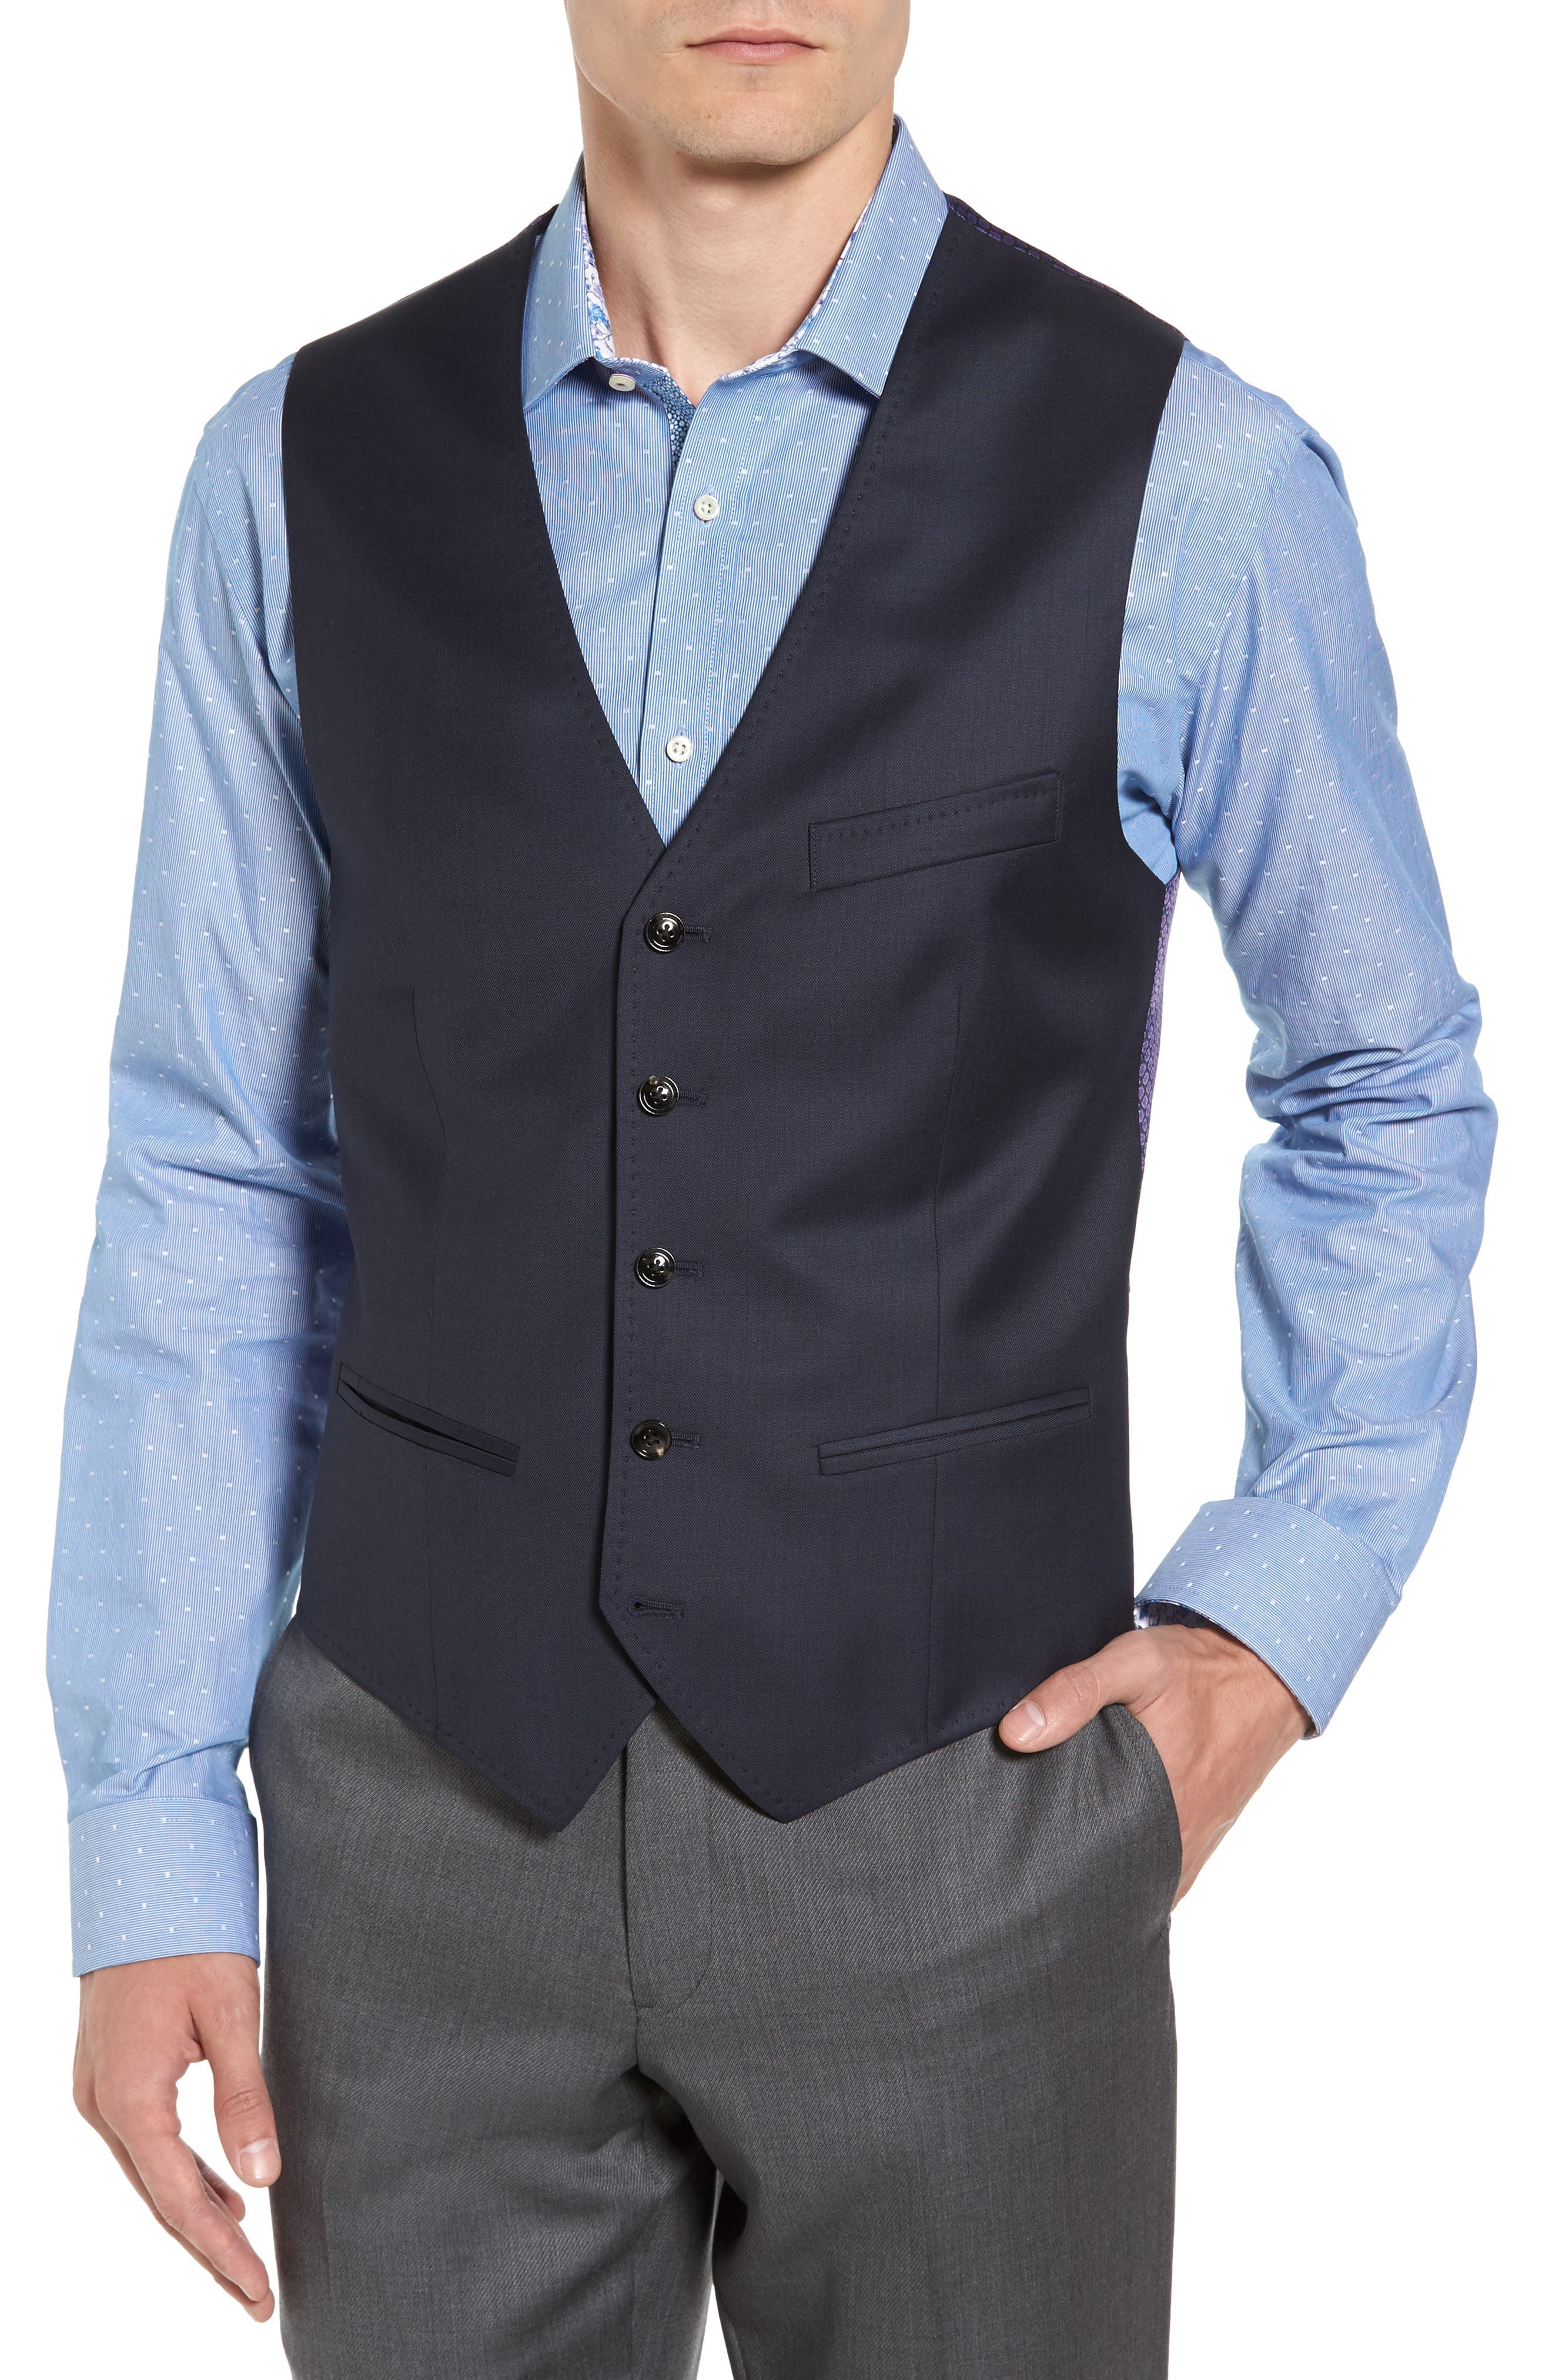 Troy Trim Fit Solid Wool Vest,                         Main,                         color, Old Blue